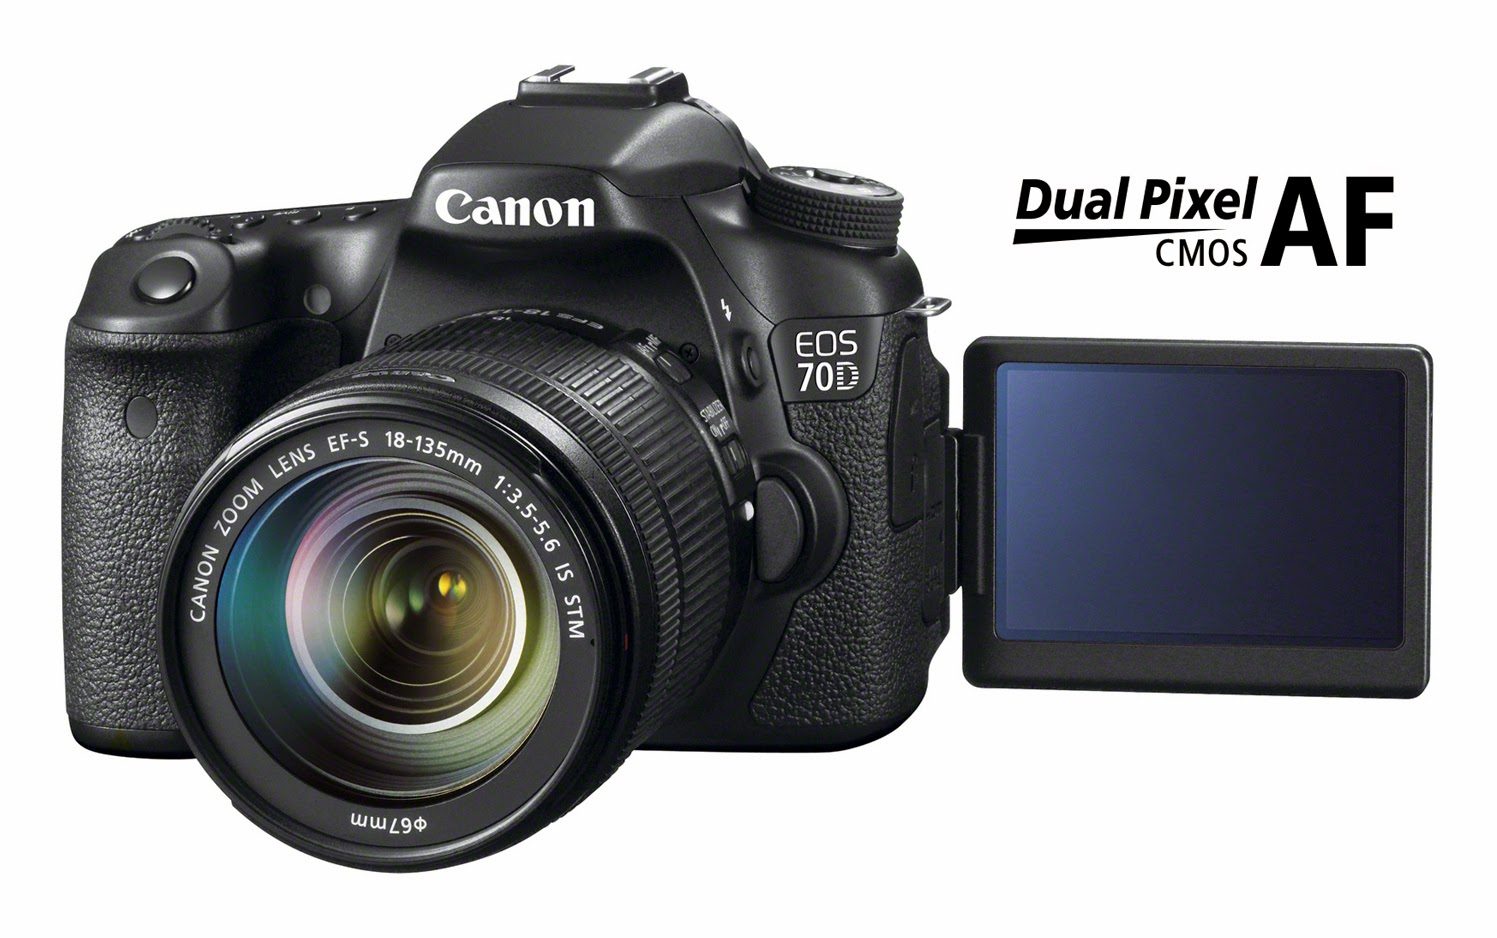 canon eos 70d vs nikon d7200 a special comparison with new perspective camera and gadget tips. Black Bedroom Furniture Sets. Home Design Ideas